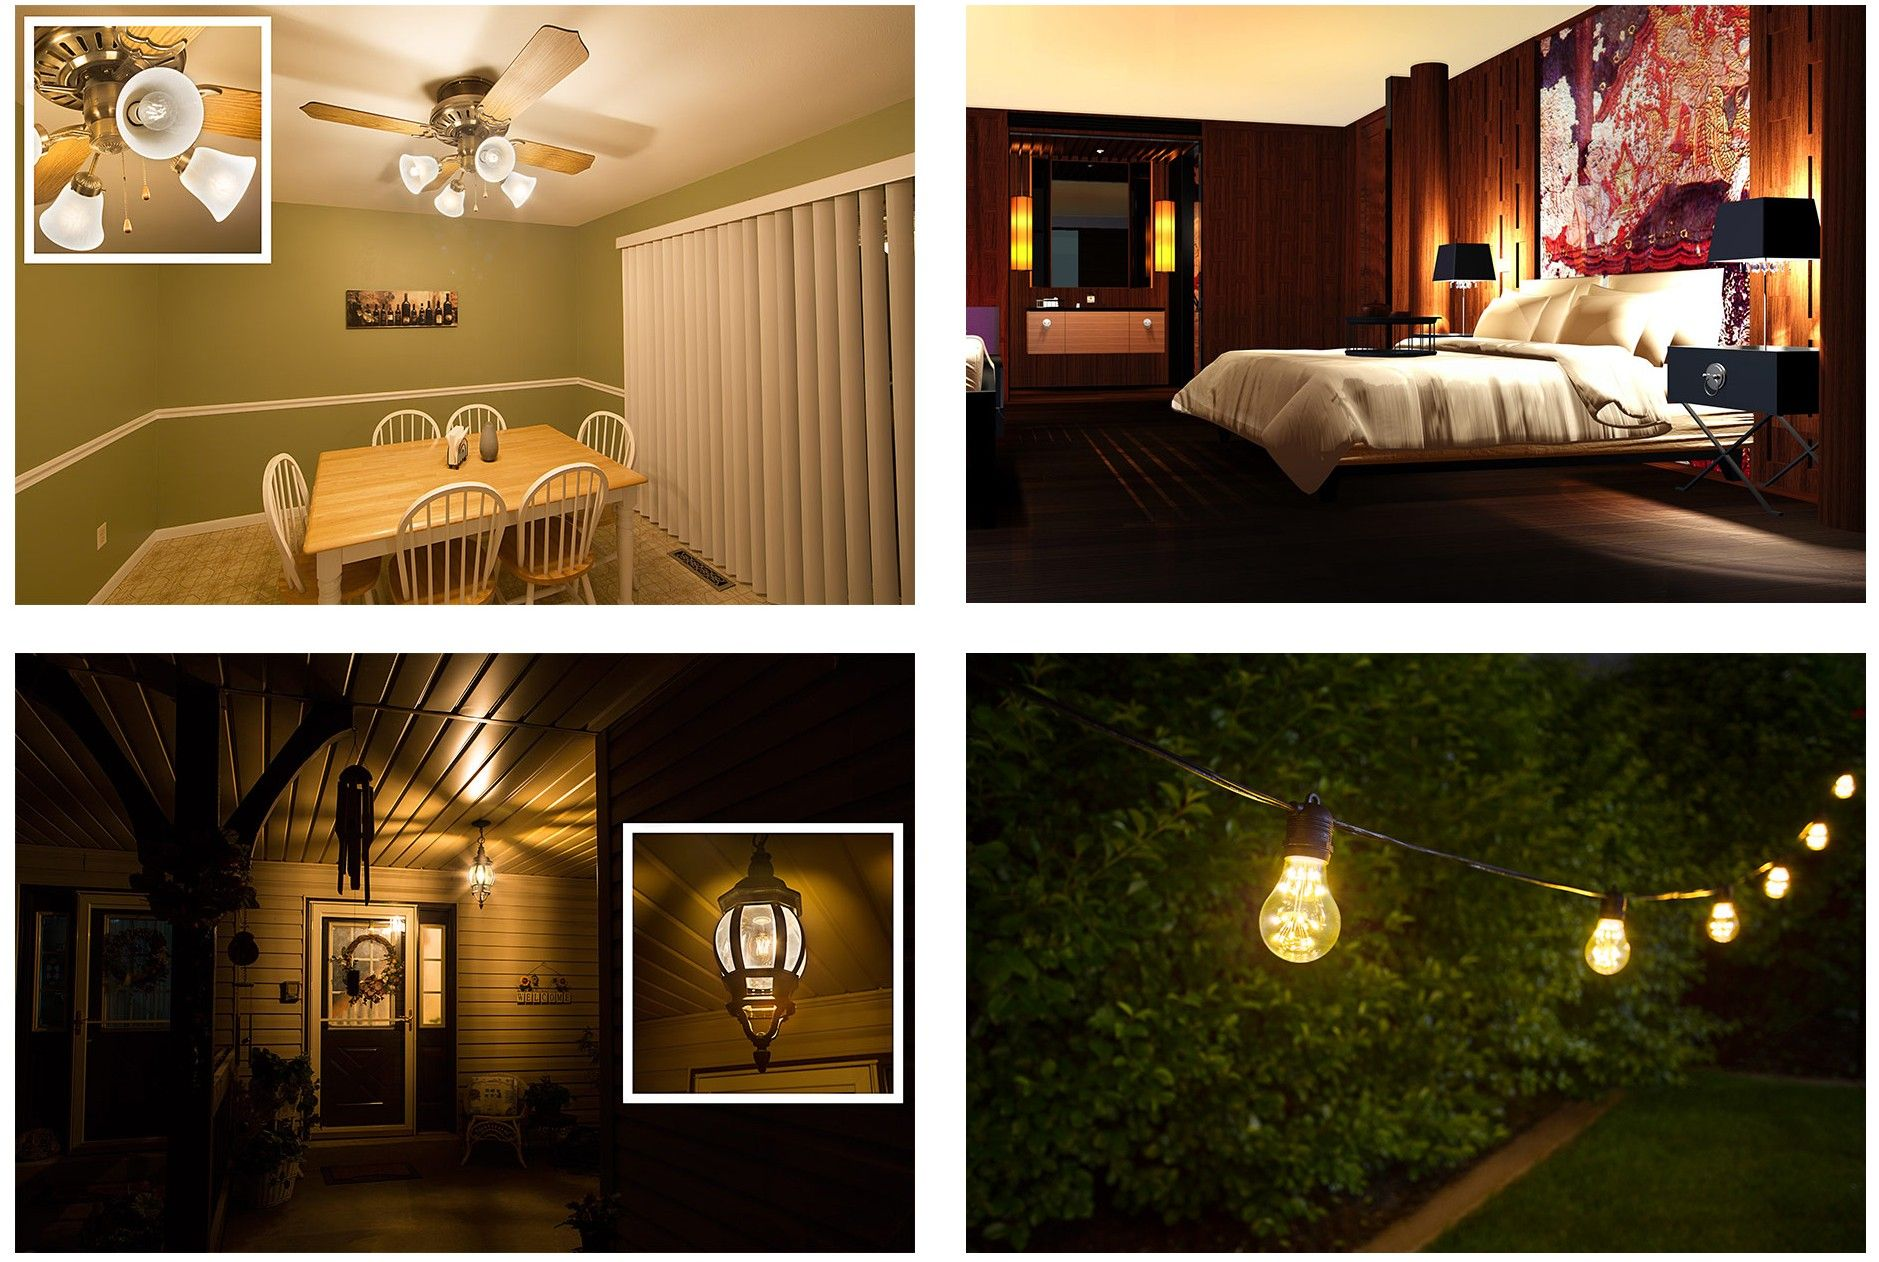 Home Lighting 101 A Guide To Understanding Light Bulb Shapes Sizes And Codes Super Bright Leds Bedroom Light Fixtures Home Lighting Porch Light Bulb